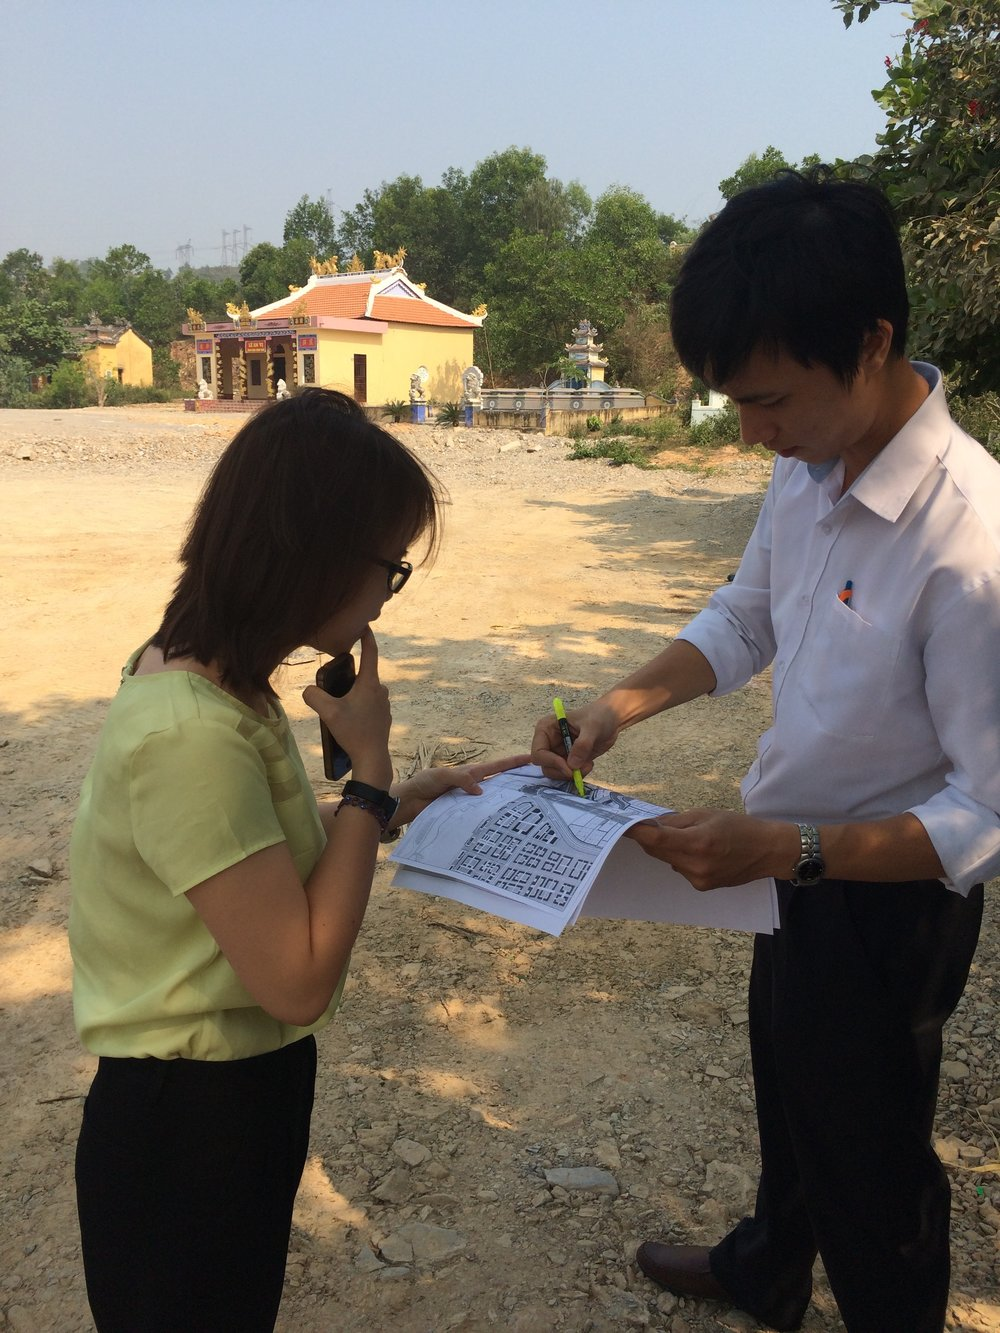 Reviewing plans at the site of the new water treatment plant in Da Nang, Vietnam